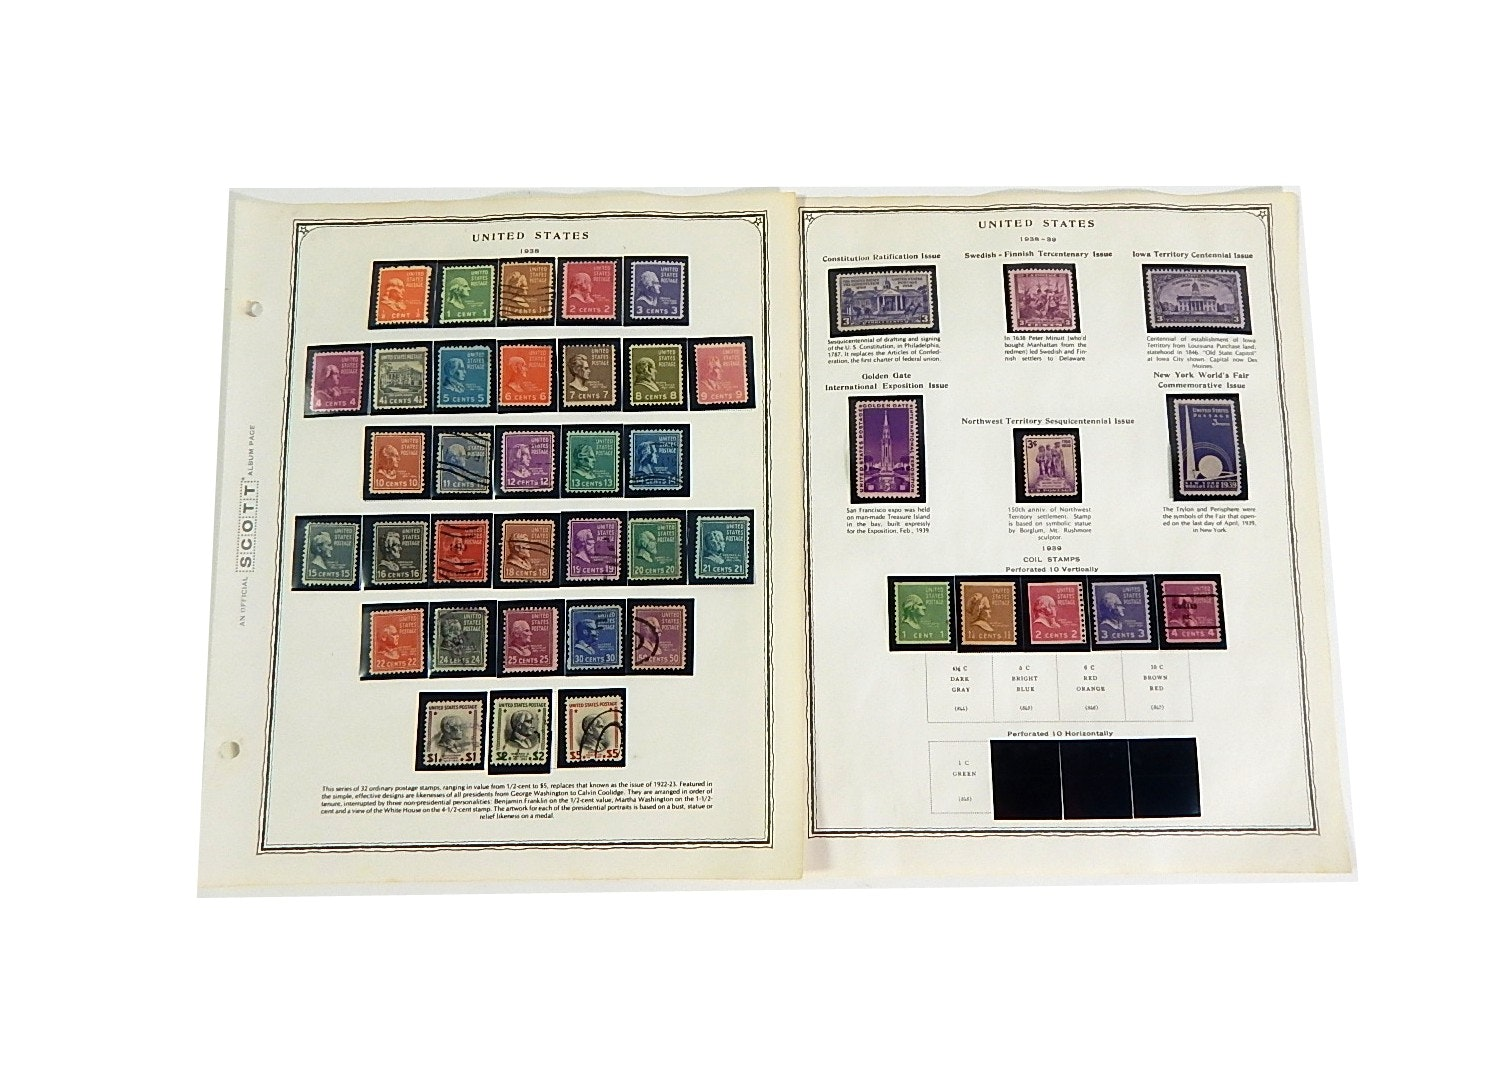 Early 1900s Stamp Collection from Scott Collectors Book - 1938 to 1939